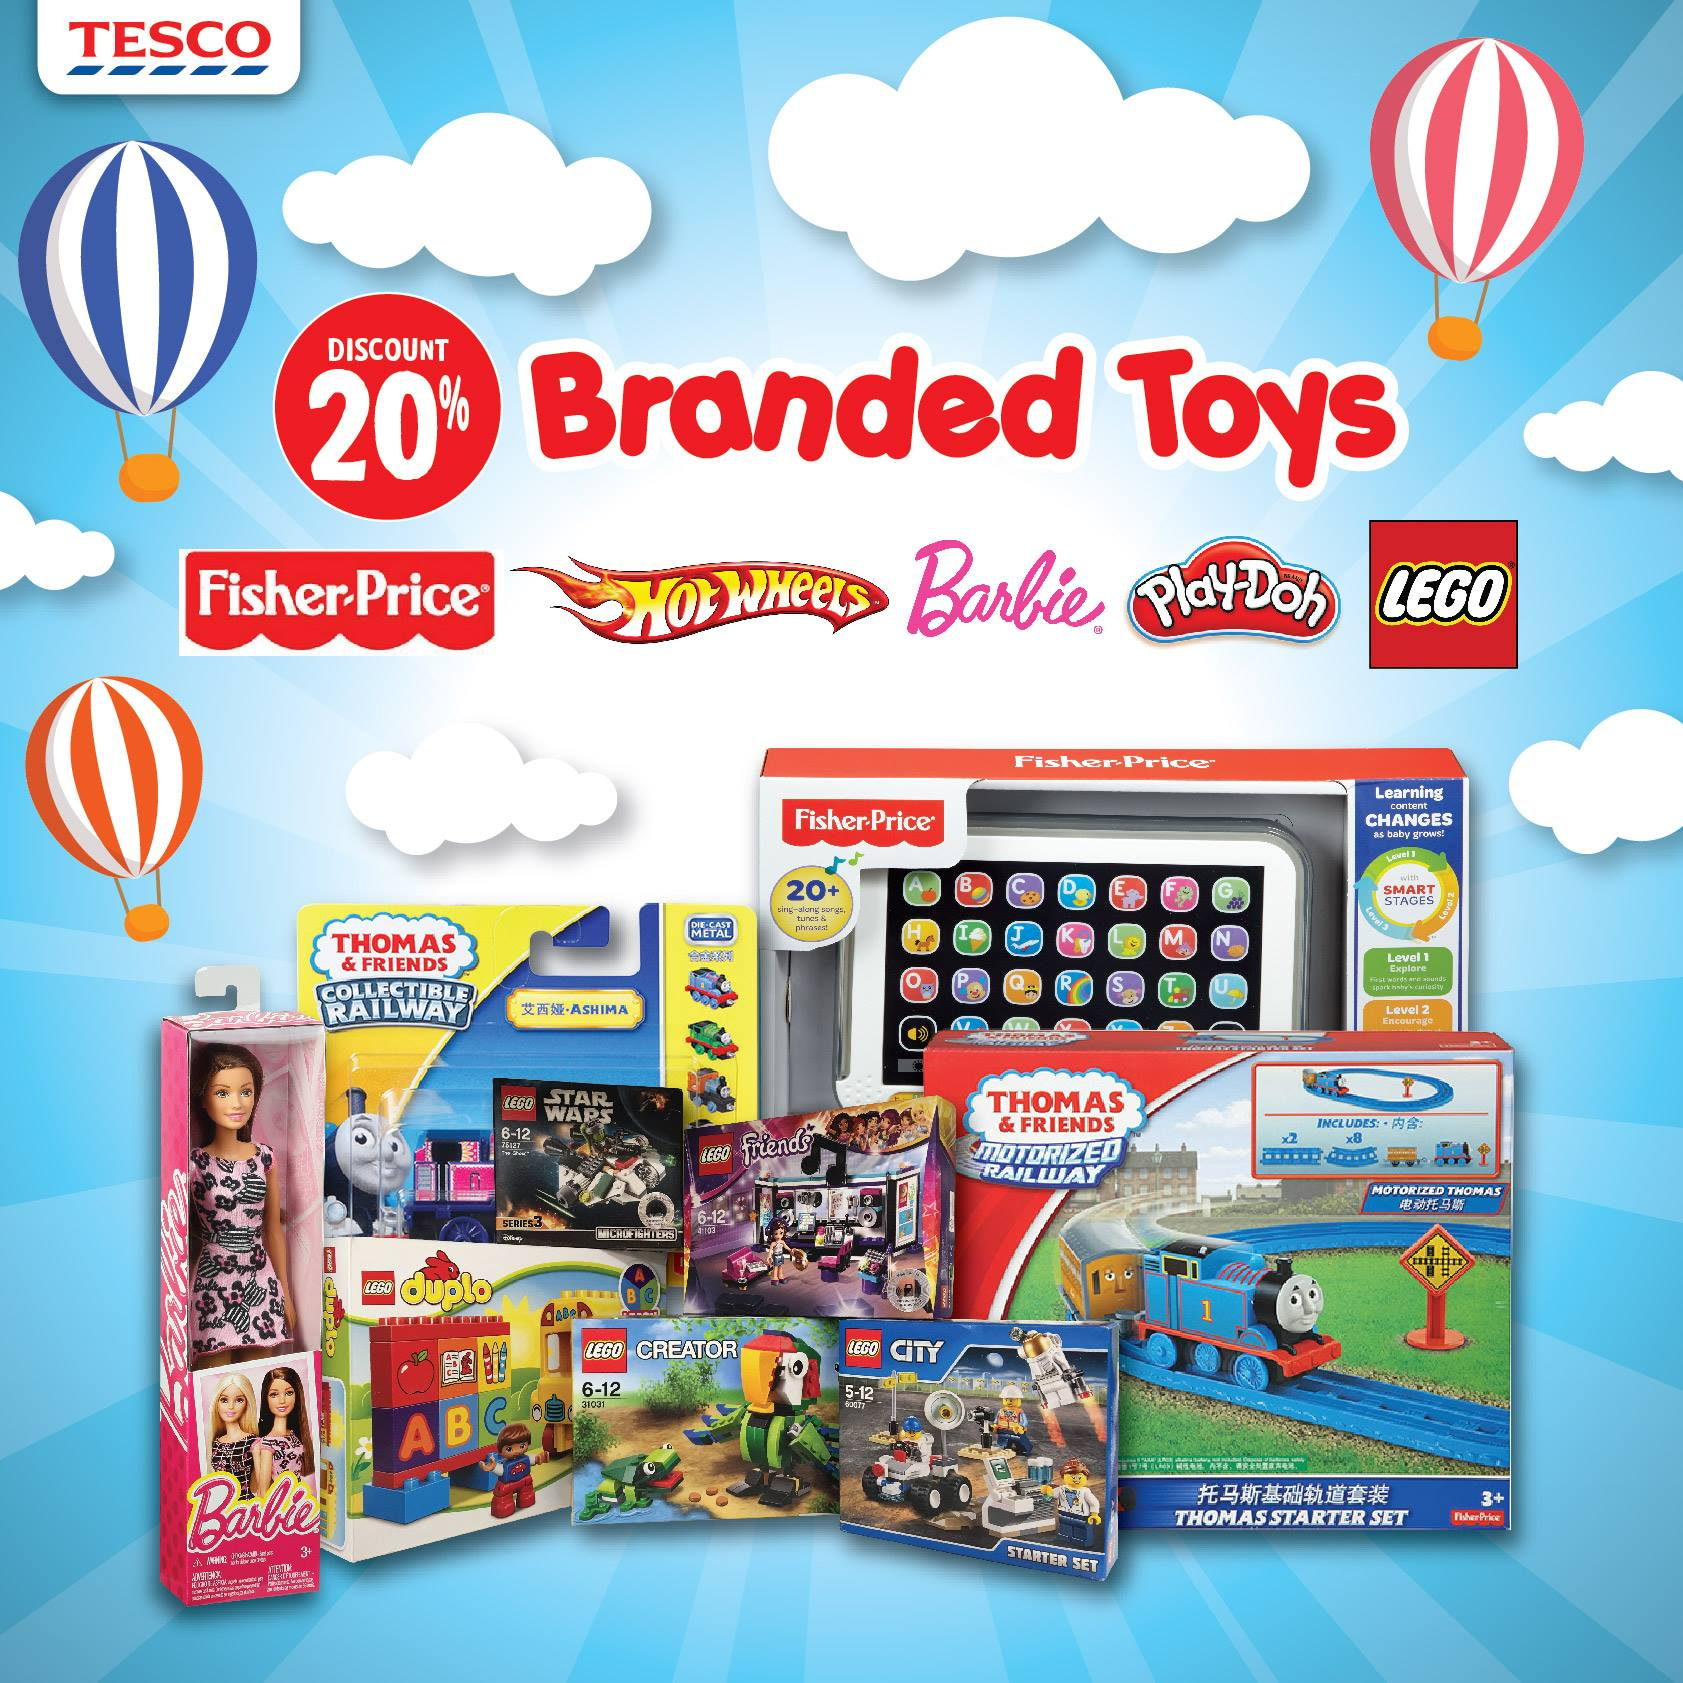 Tesco Offer Branded Toys Promo!